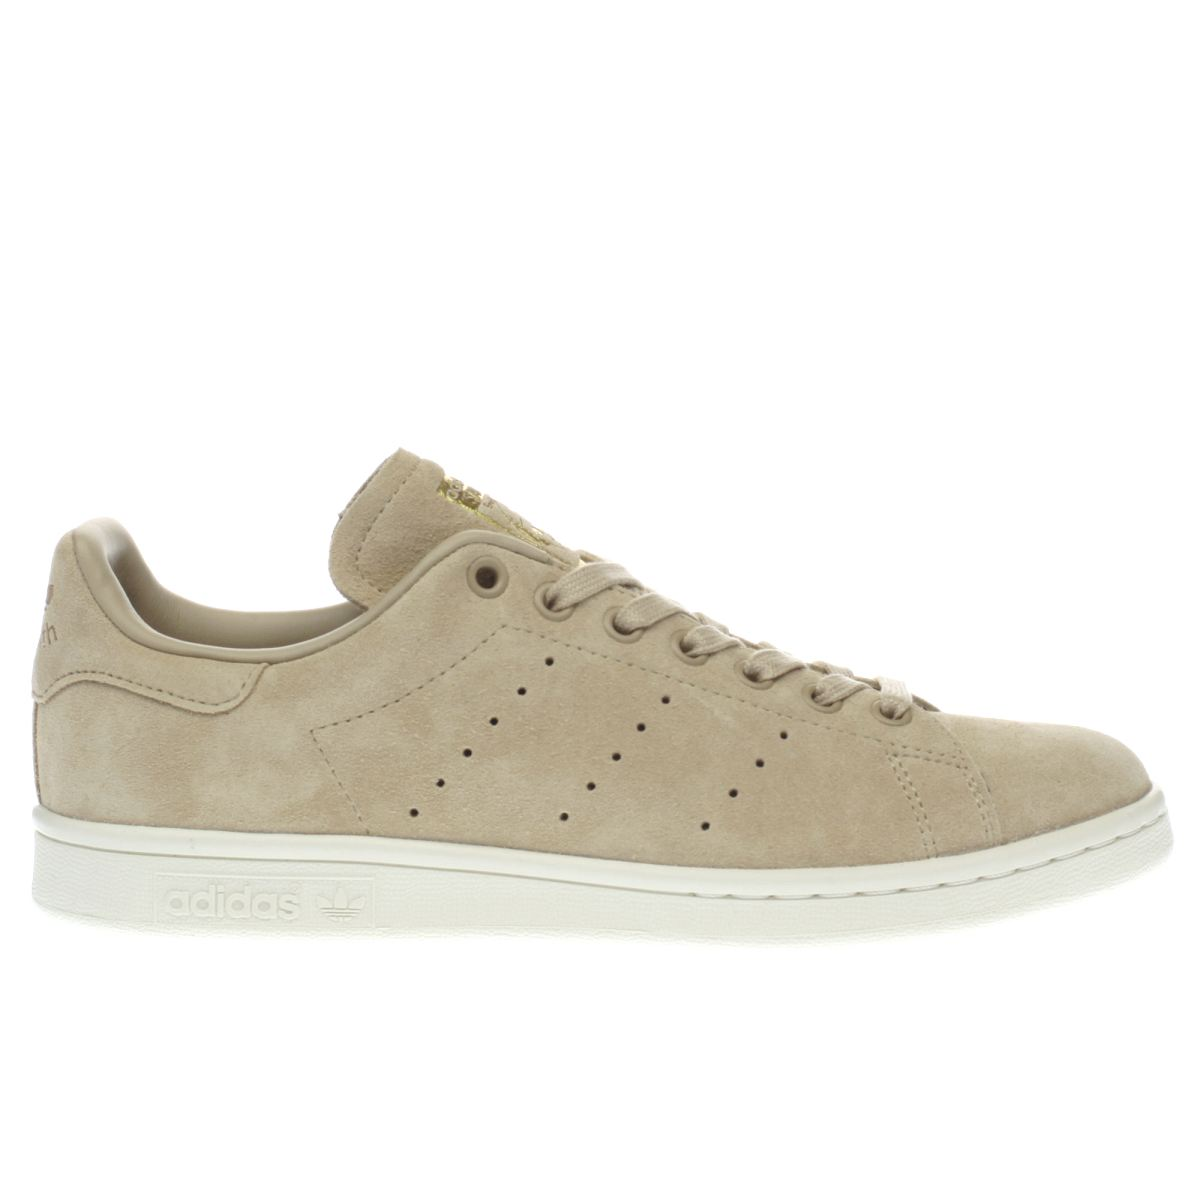 adidas beige stan smith suede trainers